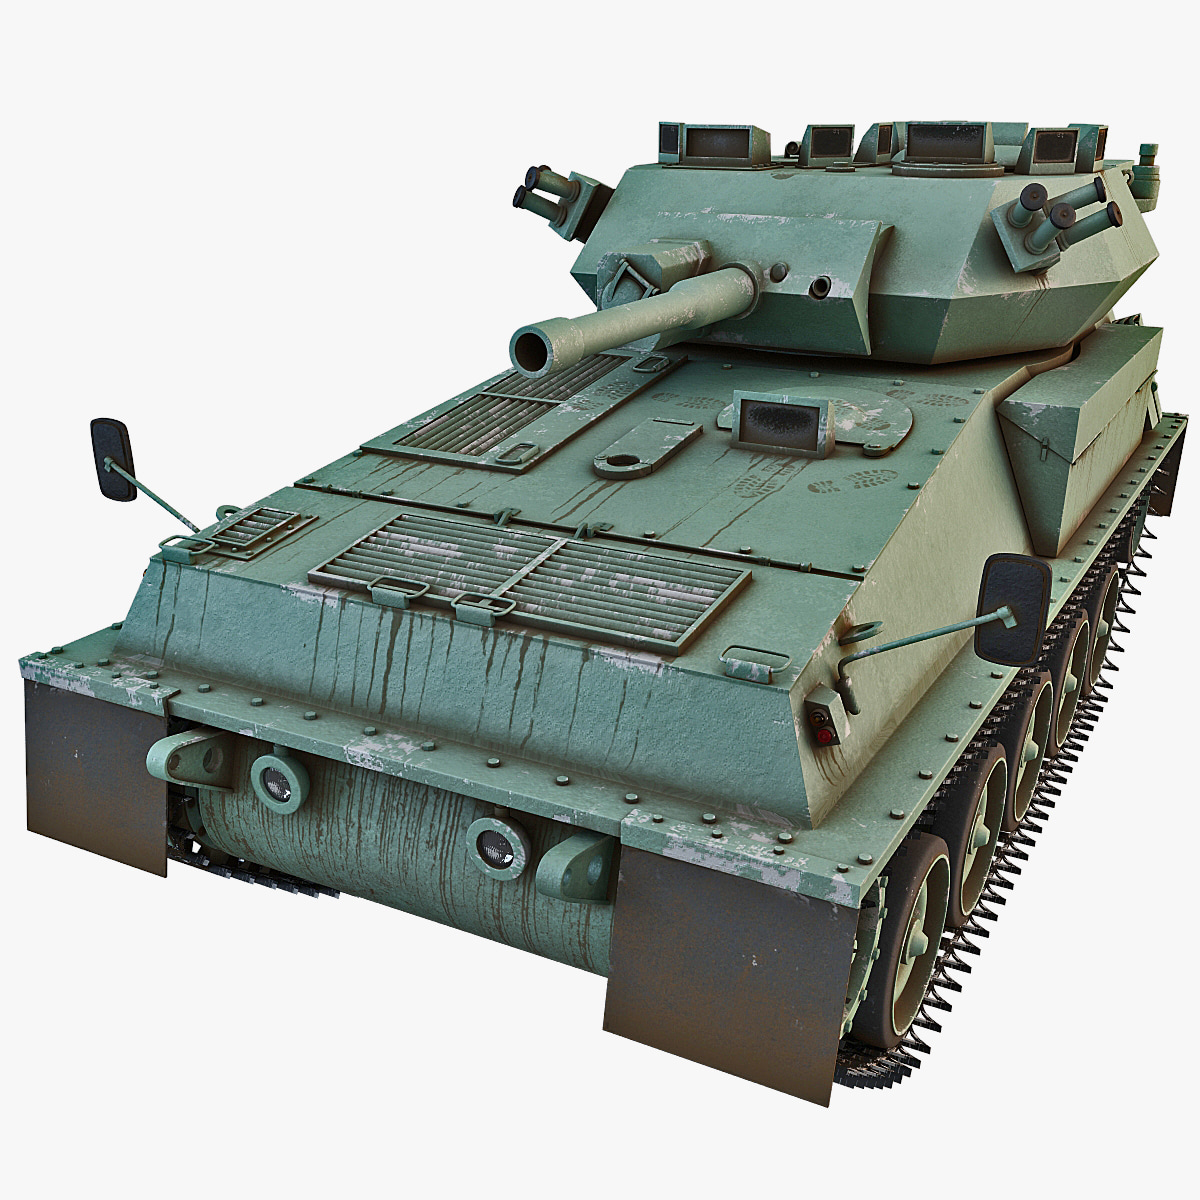 FV101_Scorpion_British_Tank_2_000.jpg